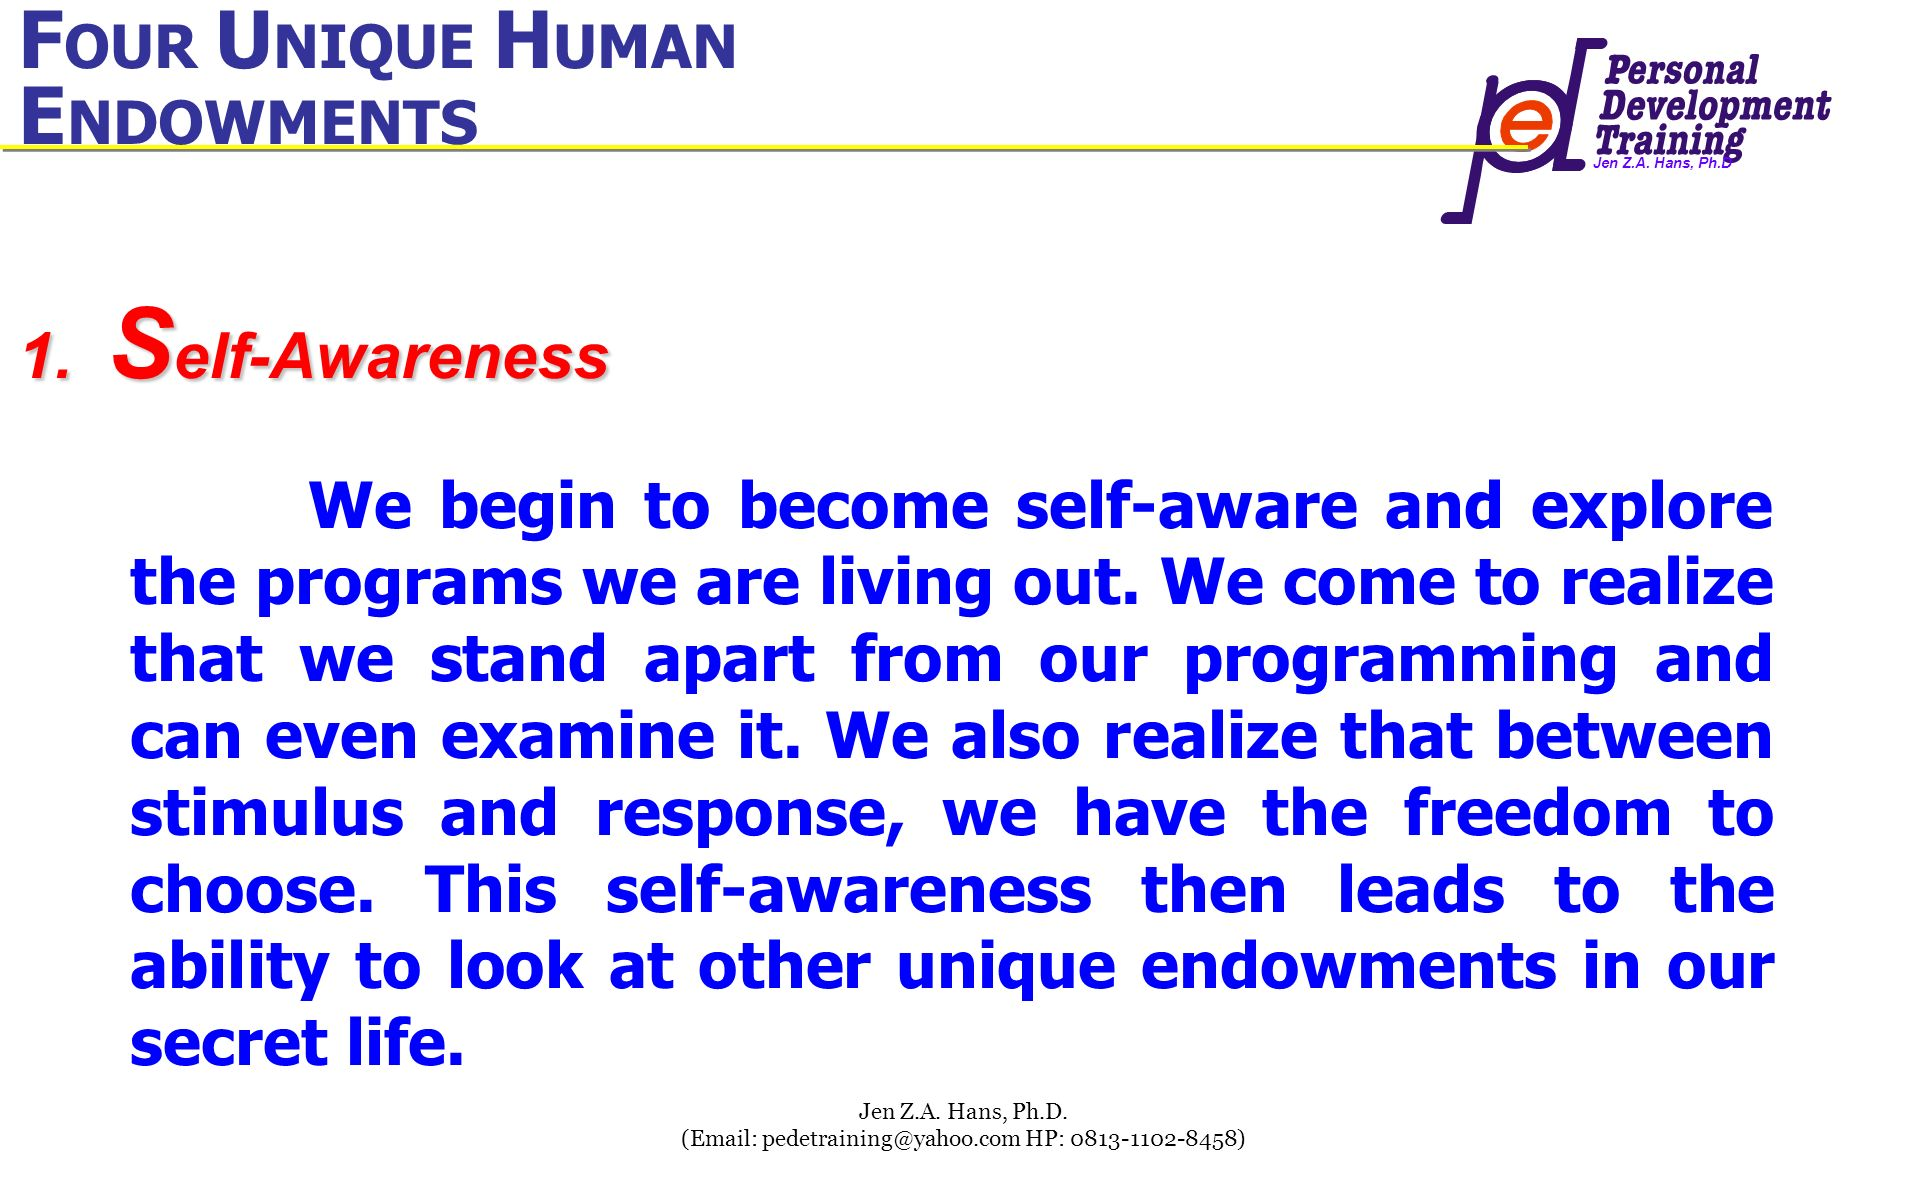 Jen Z.A. Hans, Ph.D Jen Z.A. Hans, Ph.D. (Email: pedetraining@yahoo.com HP: 0813-1102-8458) F OUR U NIQUE H UMAN E NDOWMENTS F OUR U NIQUE H UMAN E ND